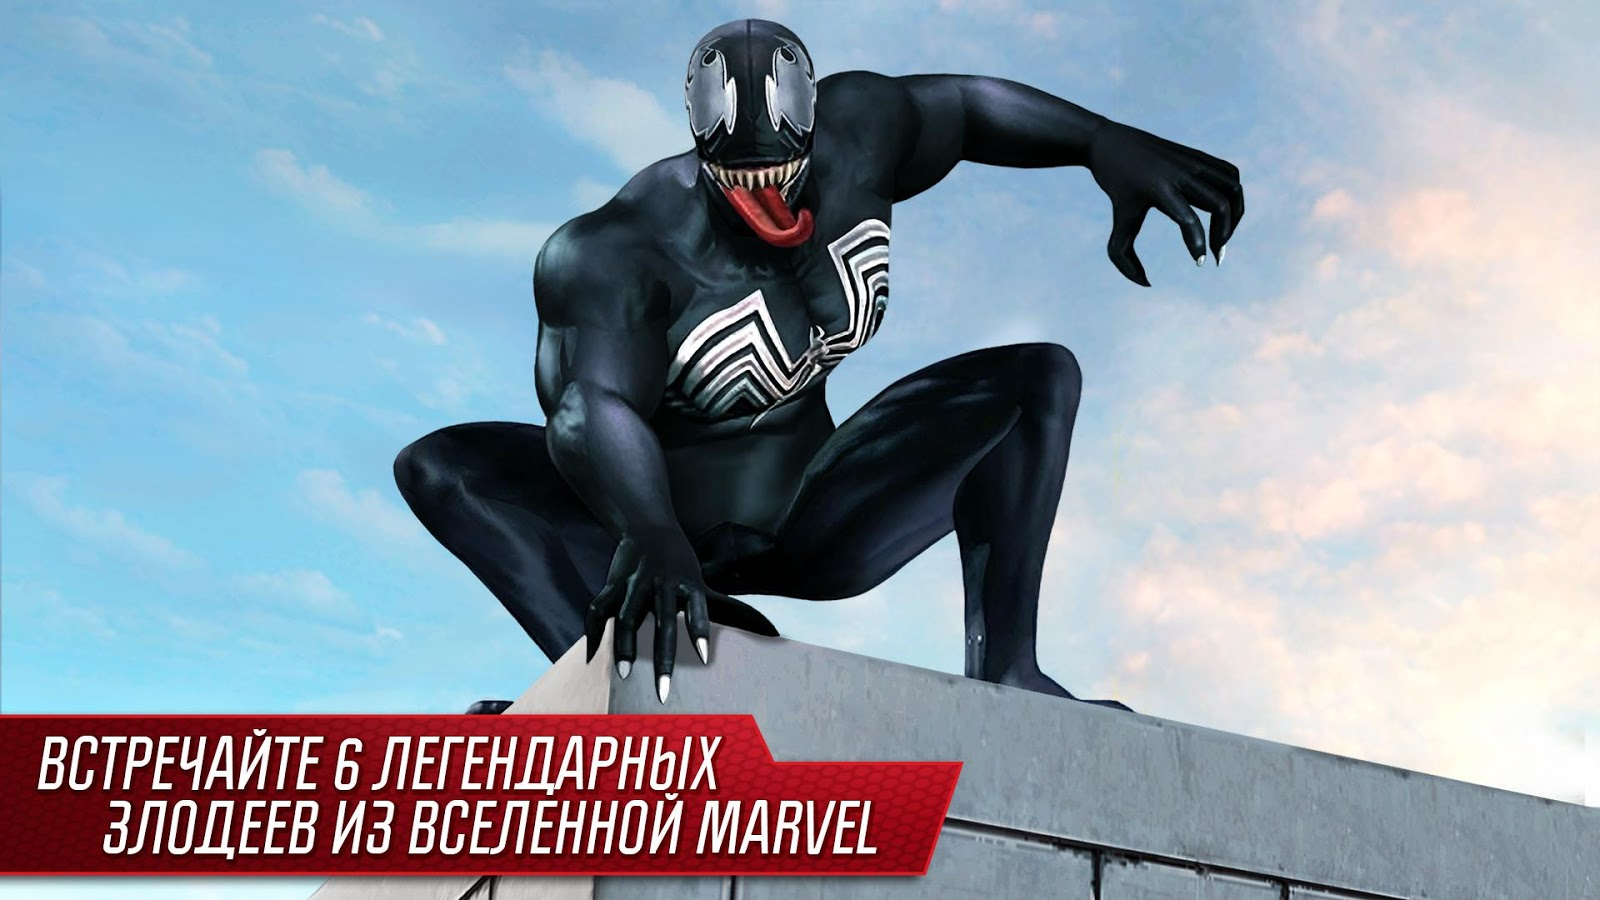 Новый Человек-паук 2 / The Amazing Spider-Man 2 v1.2.0m (Offline) 1.2.0m [Ru/En]